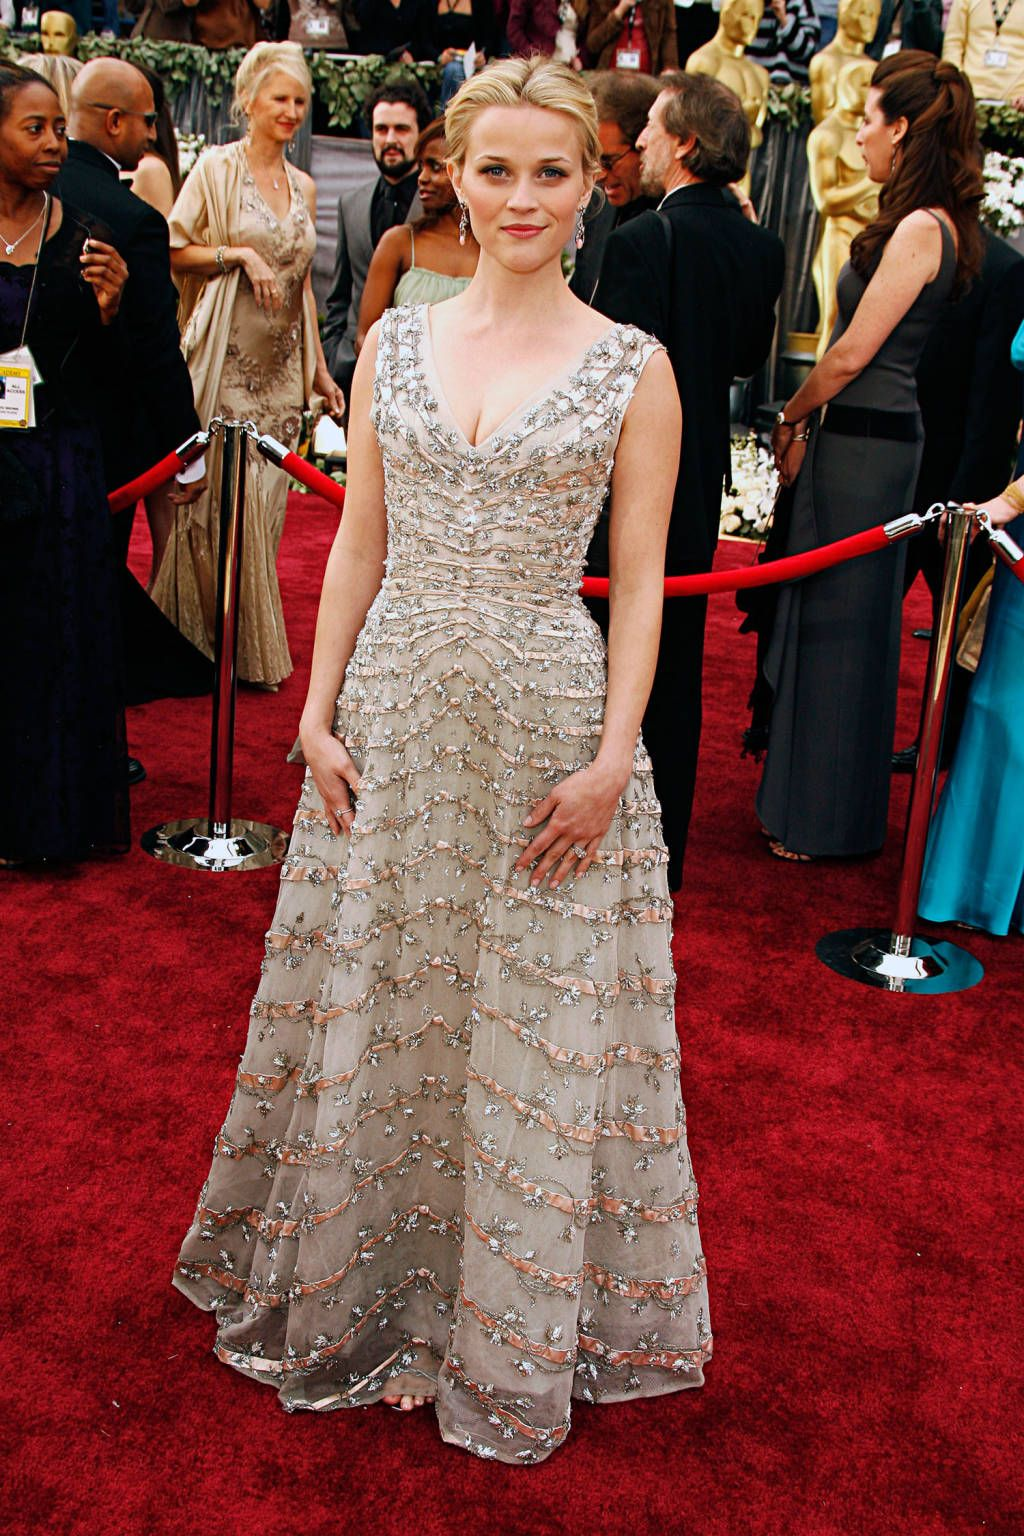 The 30 Most Iconic Red Carpet Dresses Of All Time – Fame10